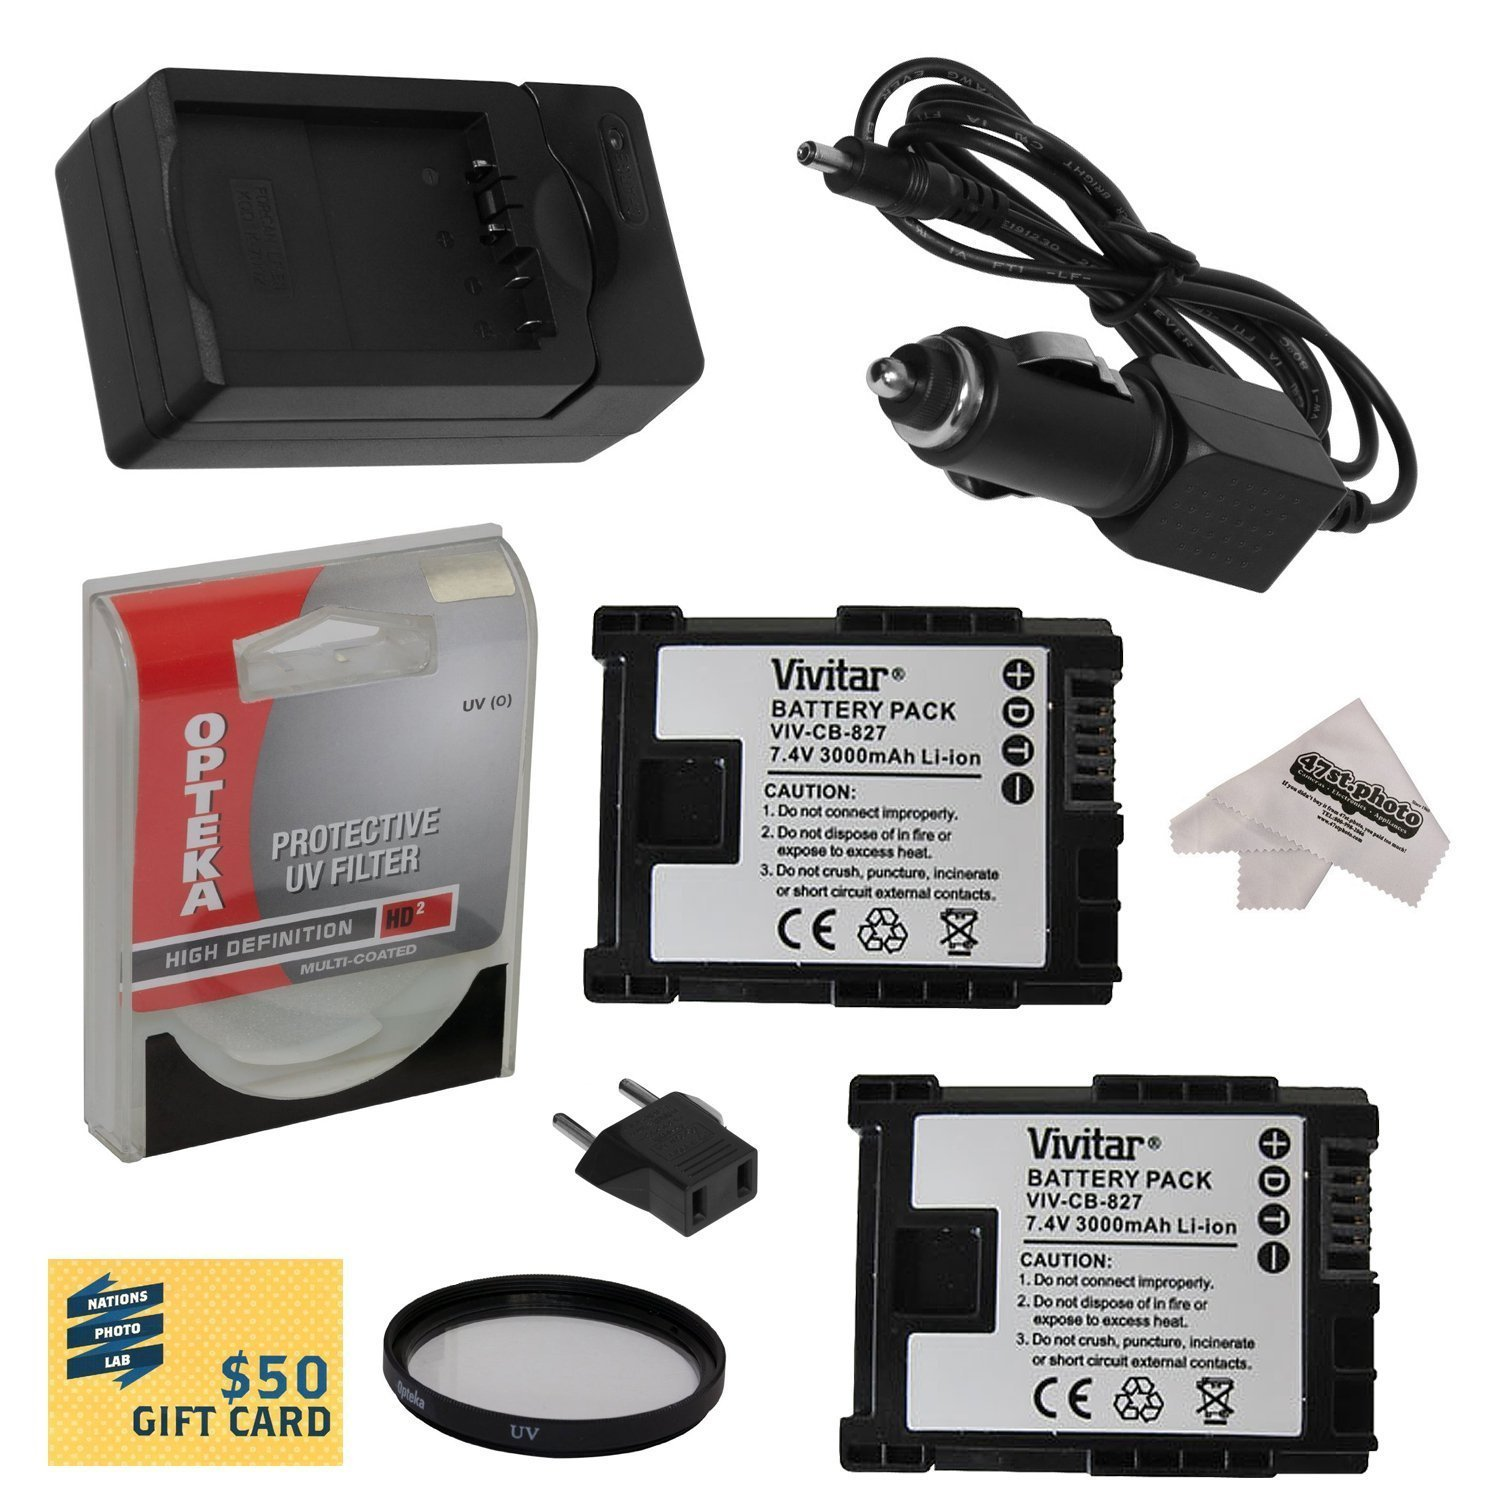 2 Canon BP-827 BP827 Lithium Ion Replacement Battery Packs 3000MAH Each 6000MAH in Total + Rapid AC/DC Battery Charger For The Canon HF M40 M41 M400 HFM40 HFM41 HFM400 Video Camera Camcorder Includes Bonus 43MM High Definition UV Protective Filter + 47stphoto Microfiber Cleaning Cloth Photo Print